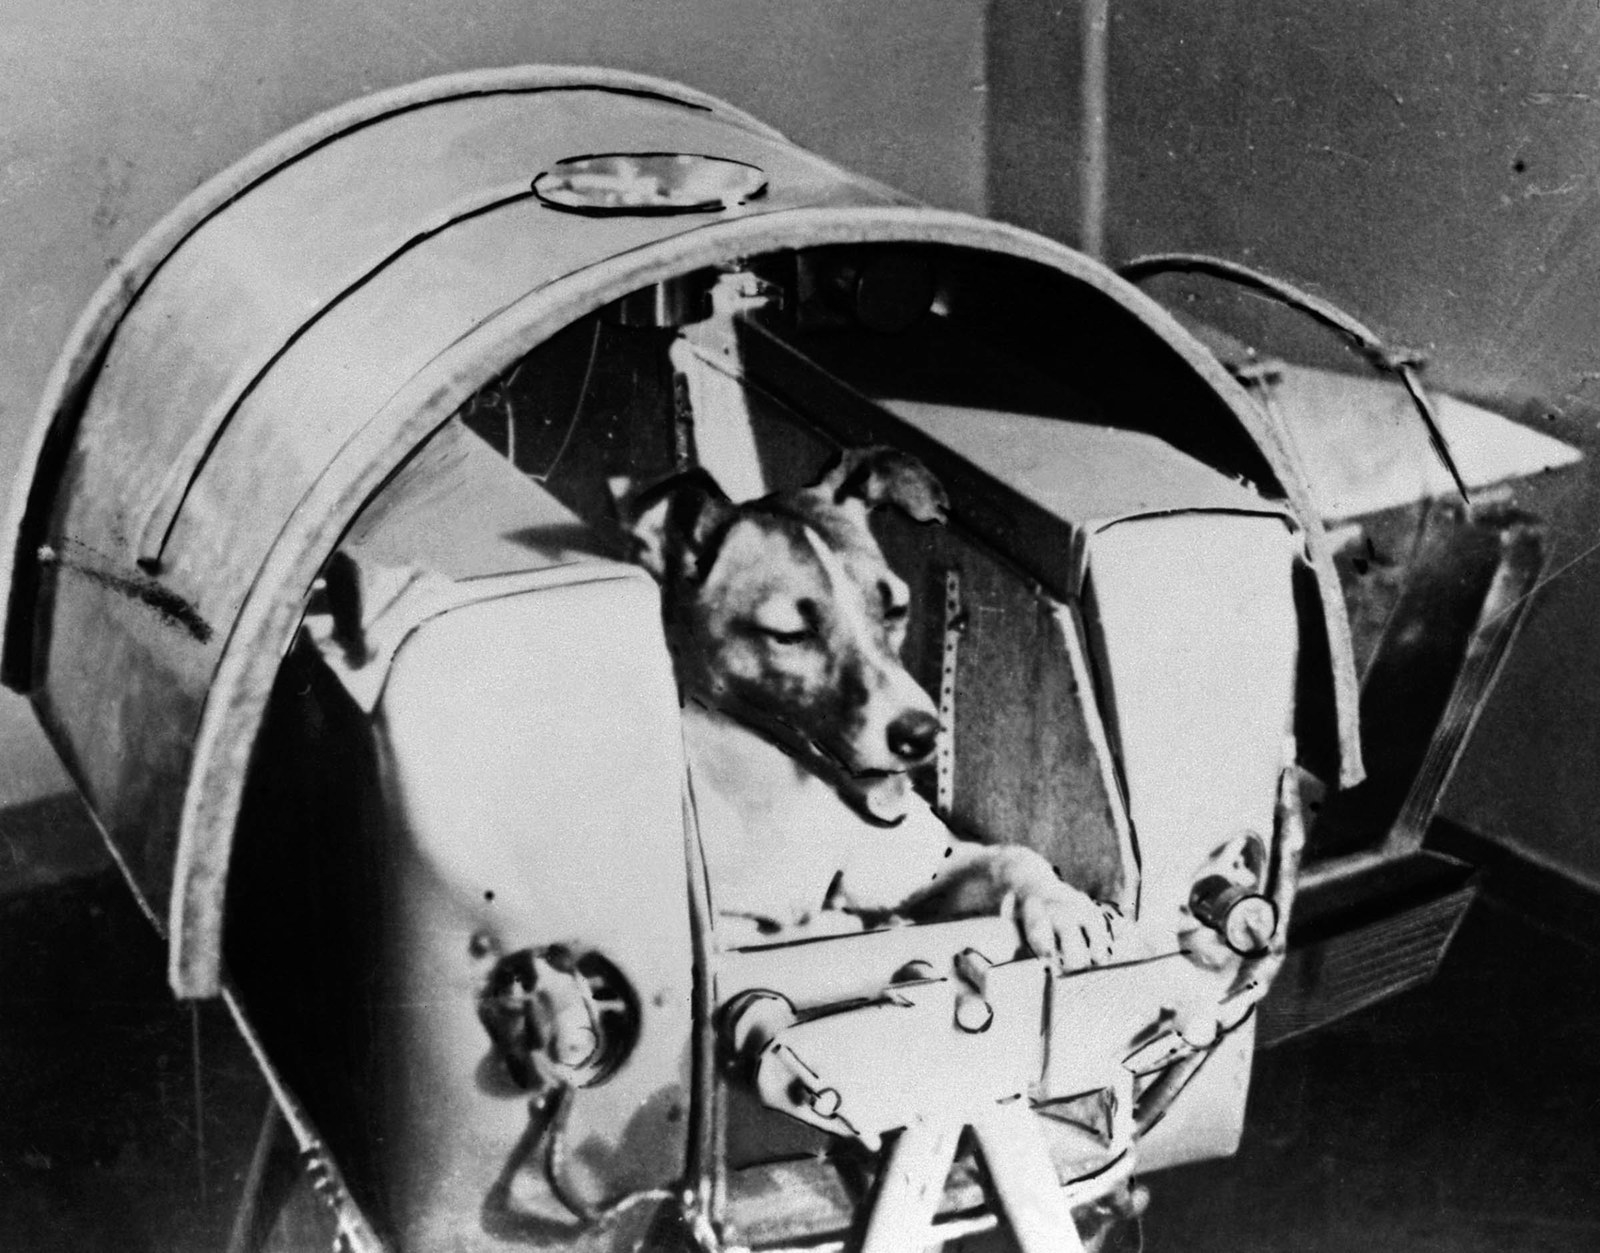 1957 Laika, the Russian cosmonaut dog, was the first animal to orbit the Earth, travelling on board the Sputnik 2 spacecraft launched on Nov. 3, 1957. The Soviet space programme used dogs and other animals to ascertain the viability of later sending humans.